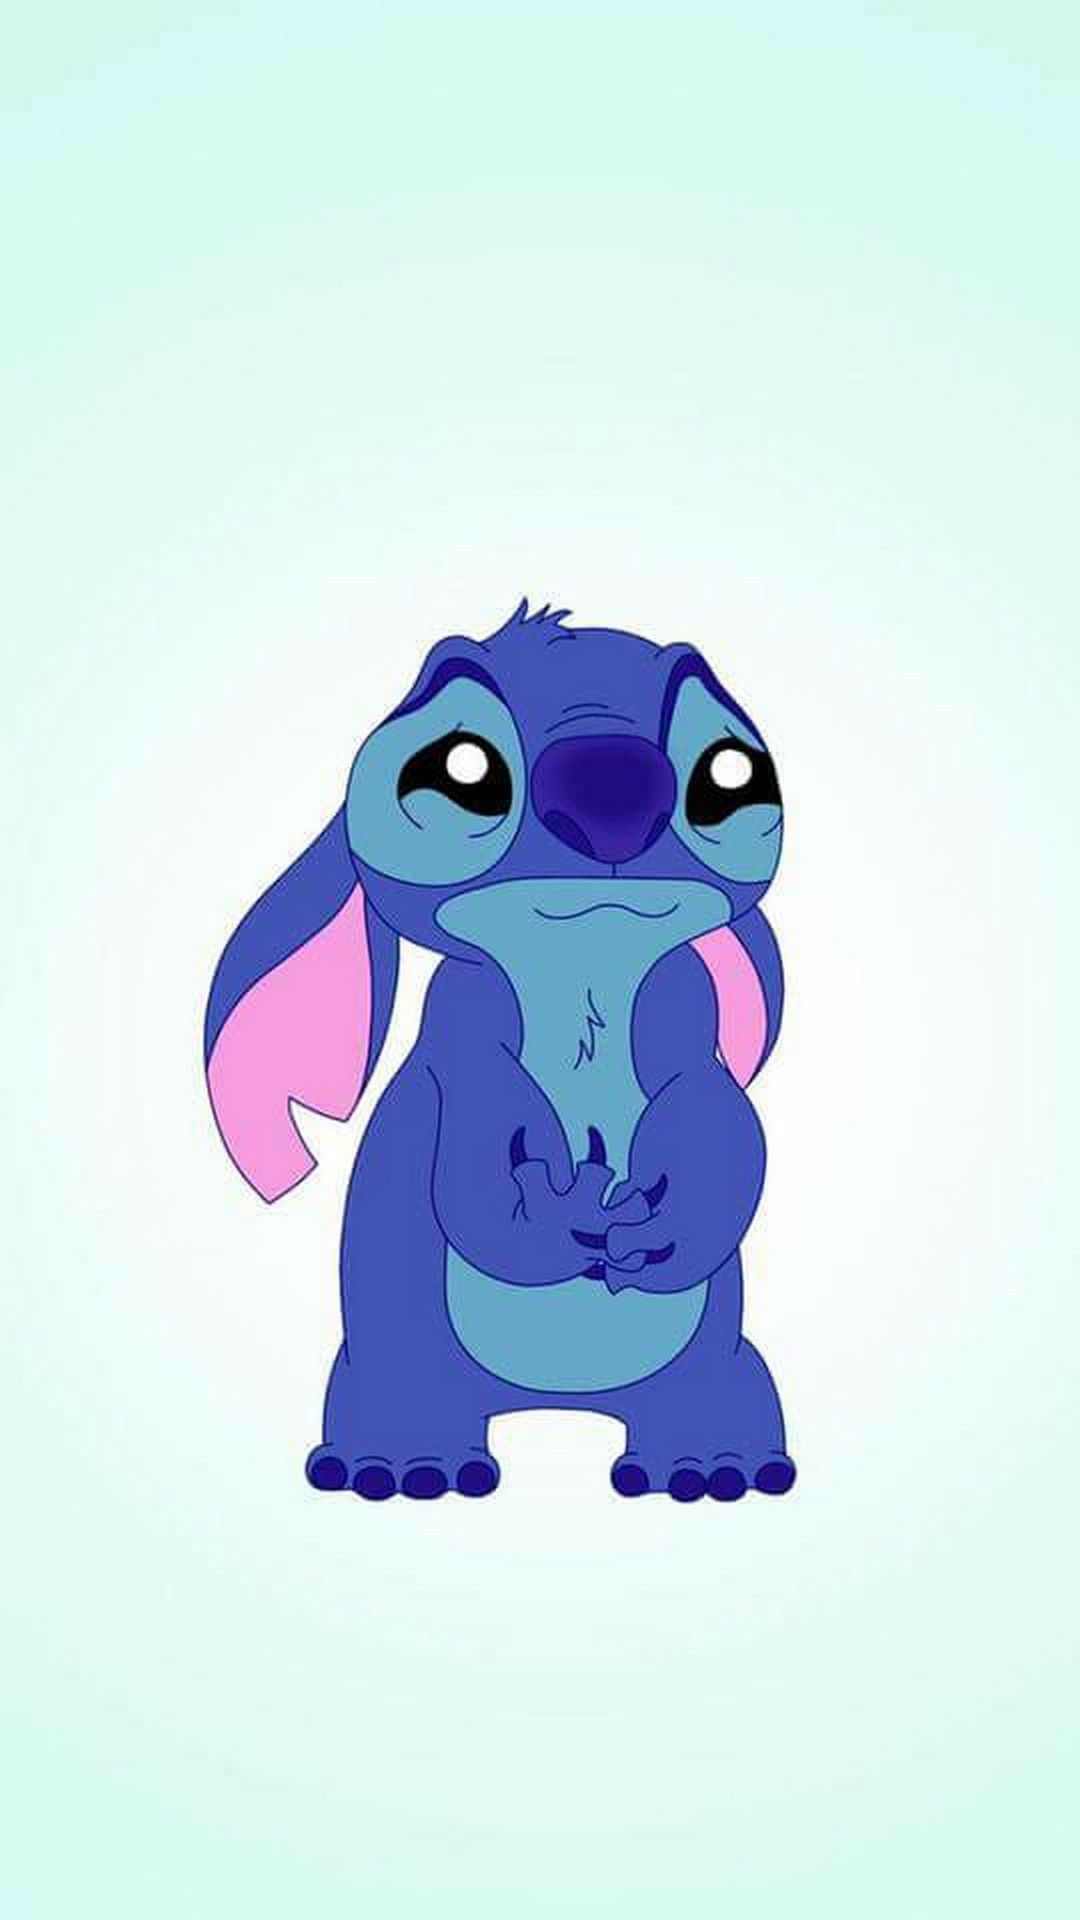 Top 9 Stitch Wallpapers High Quality For Your Android Or Iphone Wallpapers Android I Cartoon Wallpaper Iphone Wallpaper Iphone Disney Cute Cartoon Wallpapers